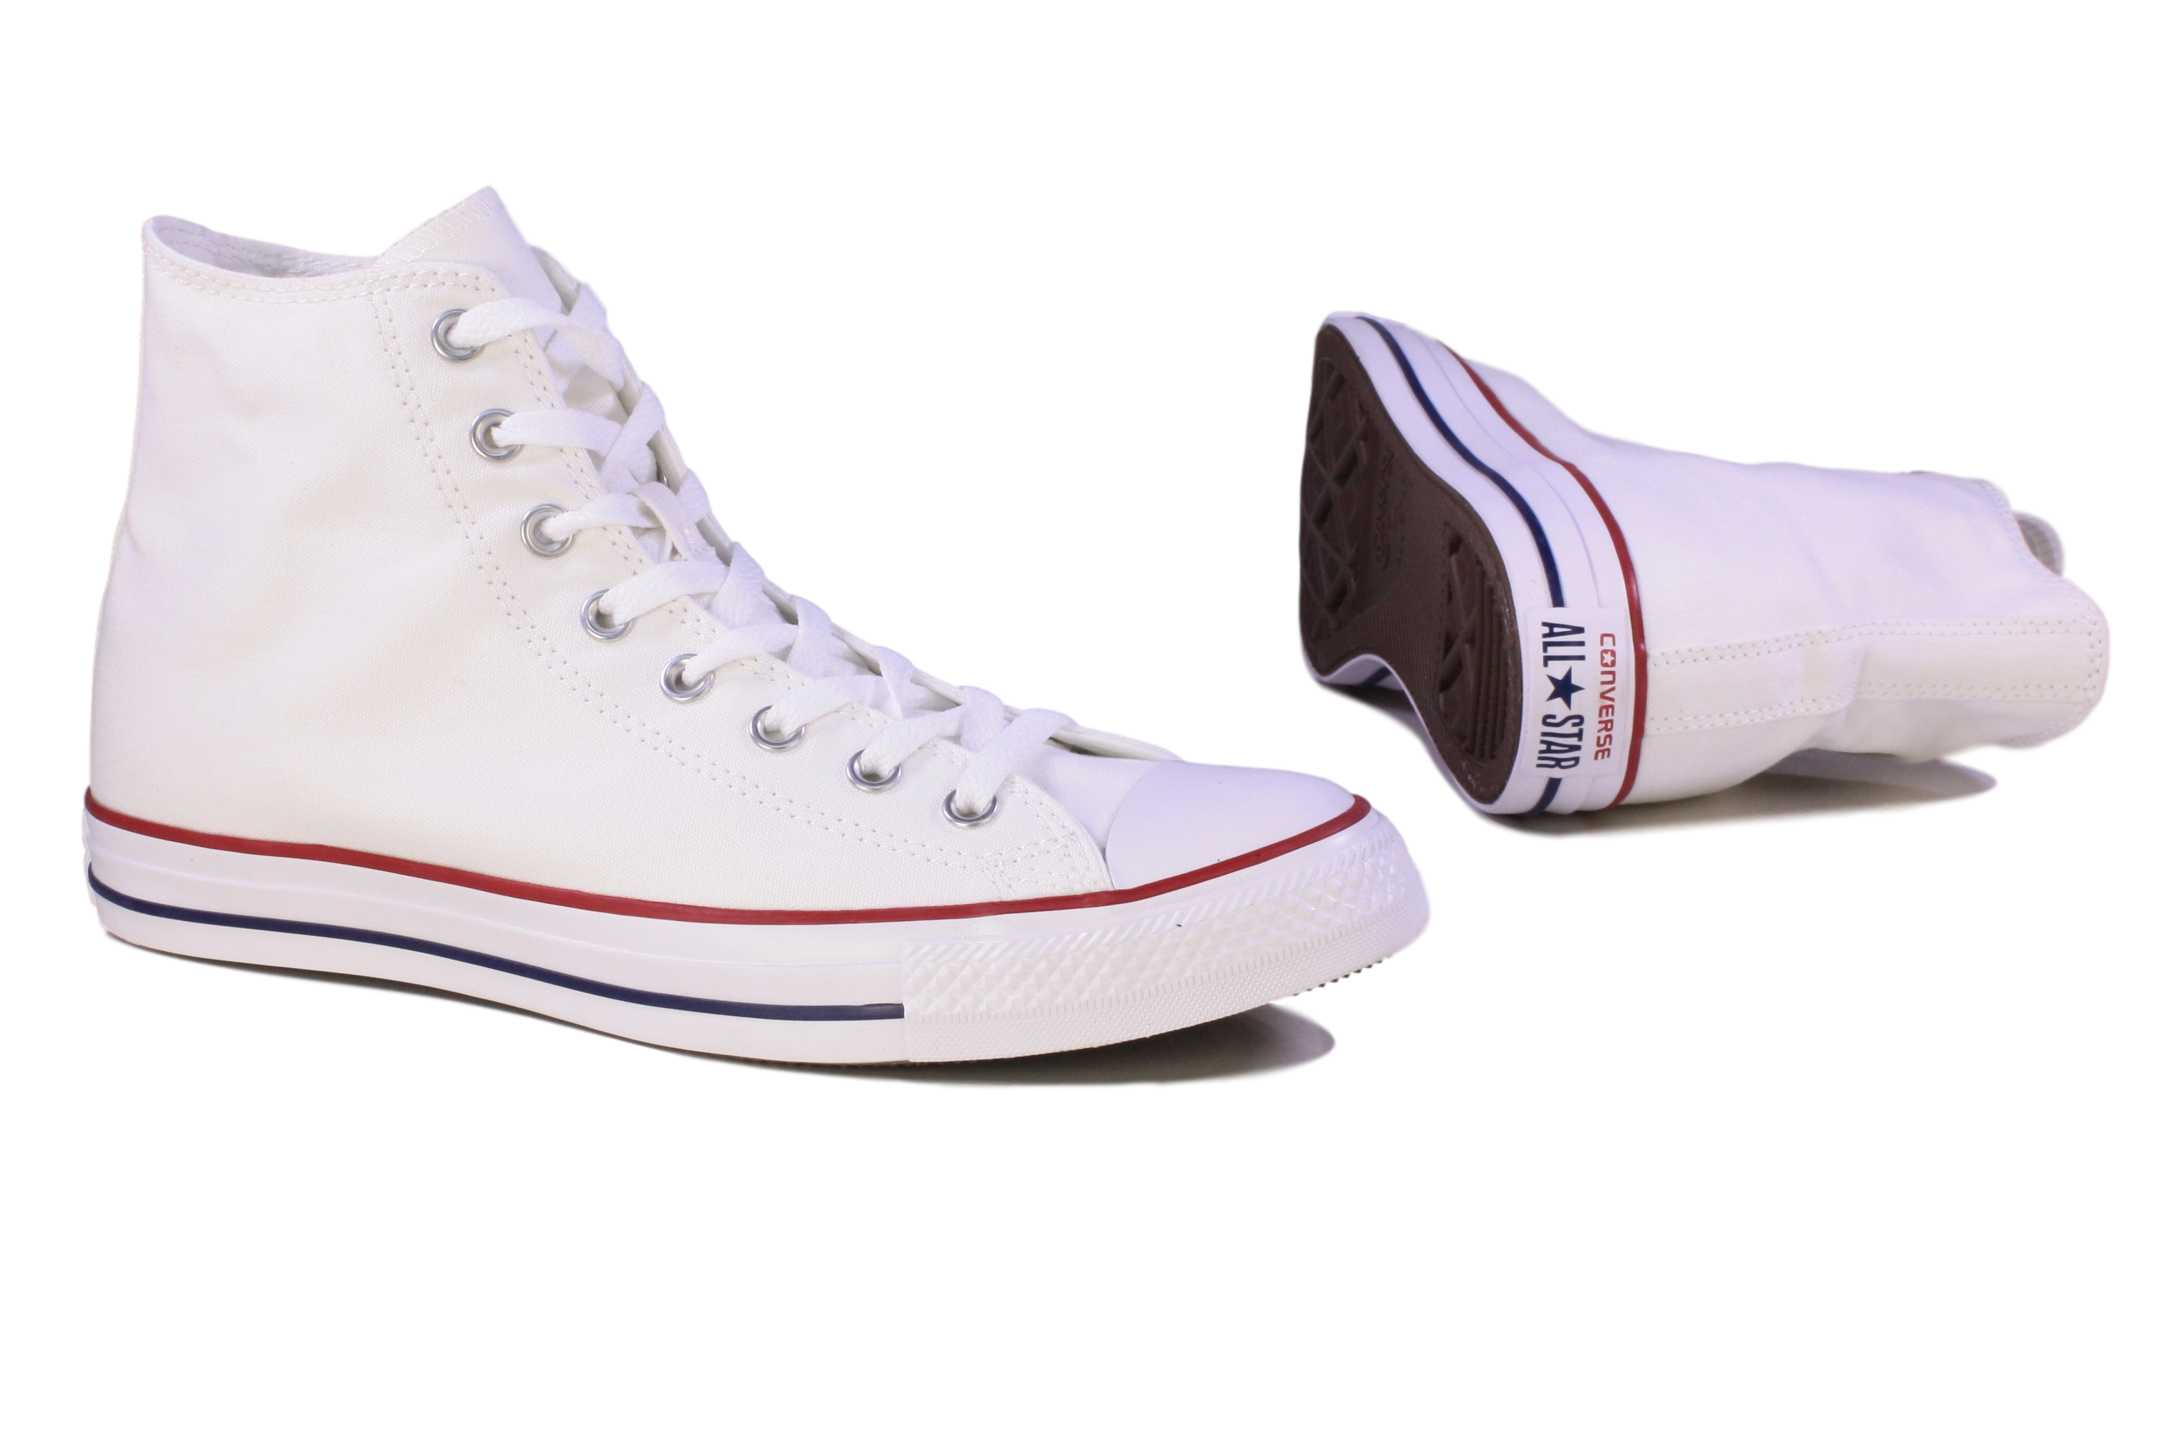 CHUCK TAYLOR ALL STAR HI M7650C